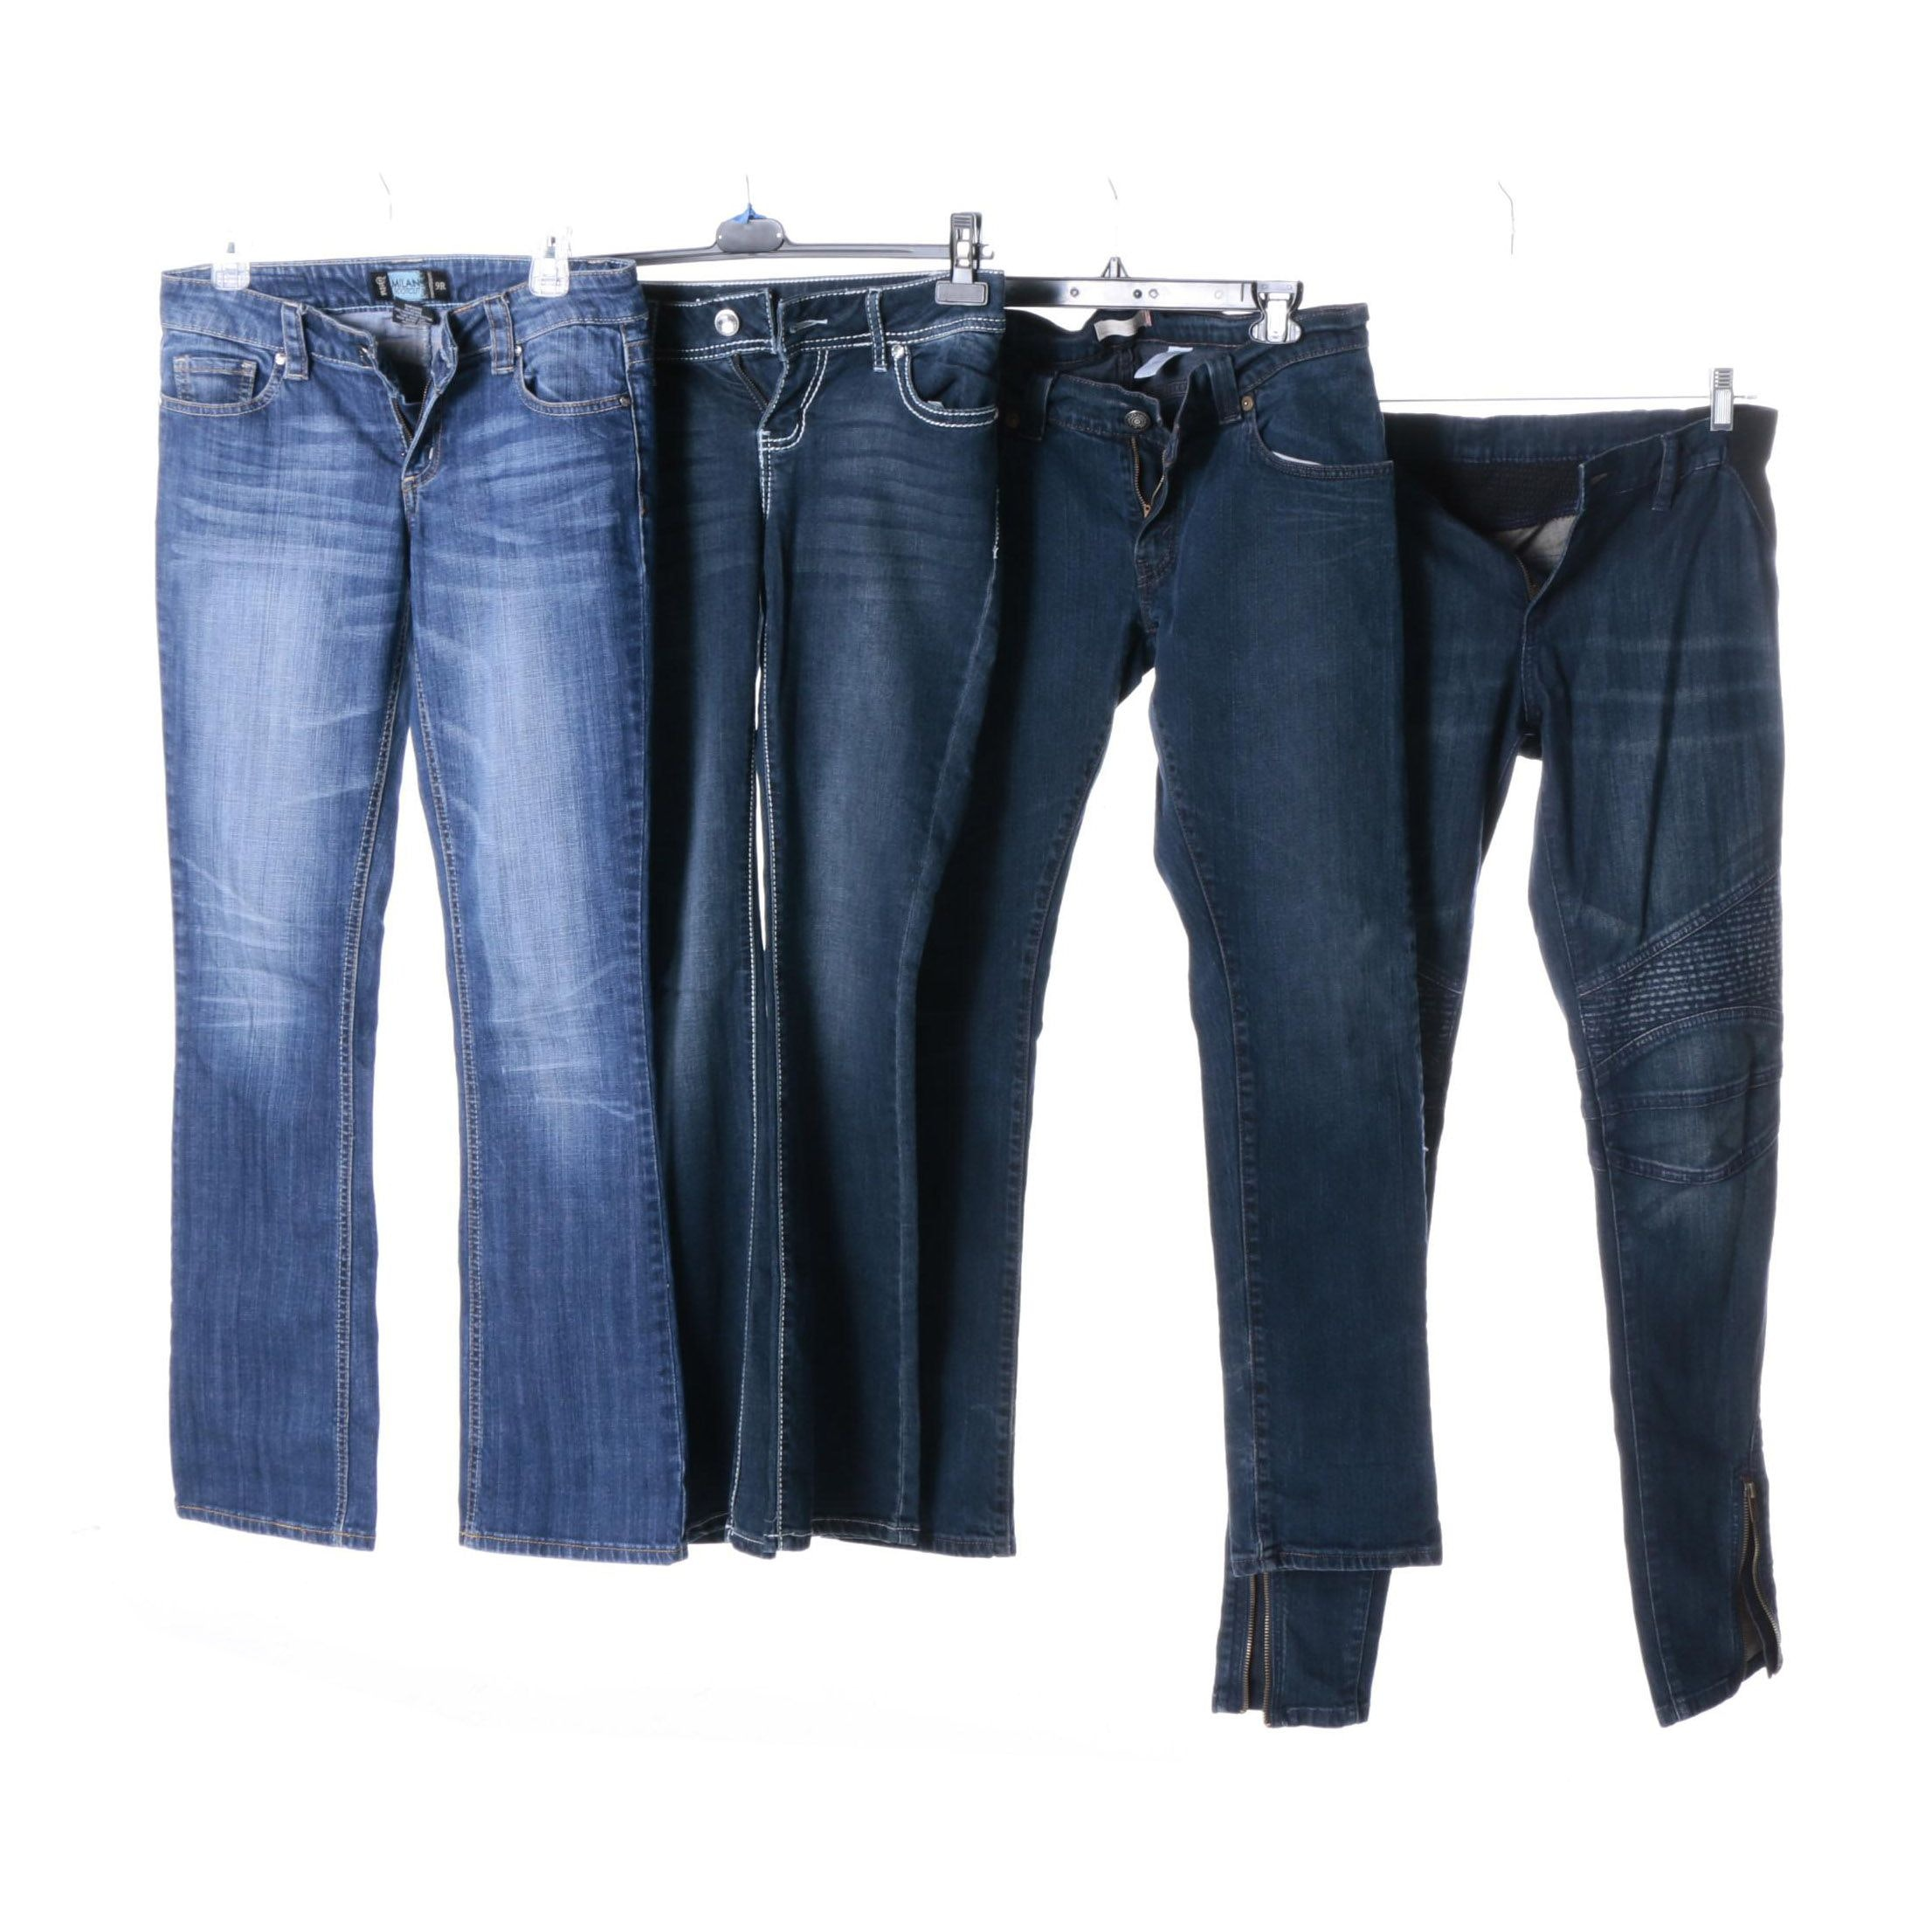 Women's Jeans Including Apt. 9, Levi's and BCBG Max Azria